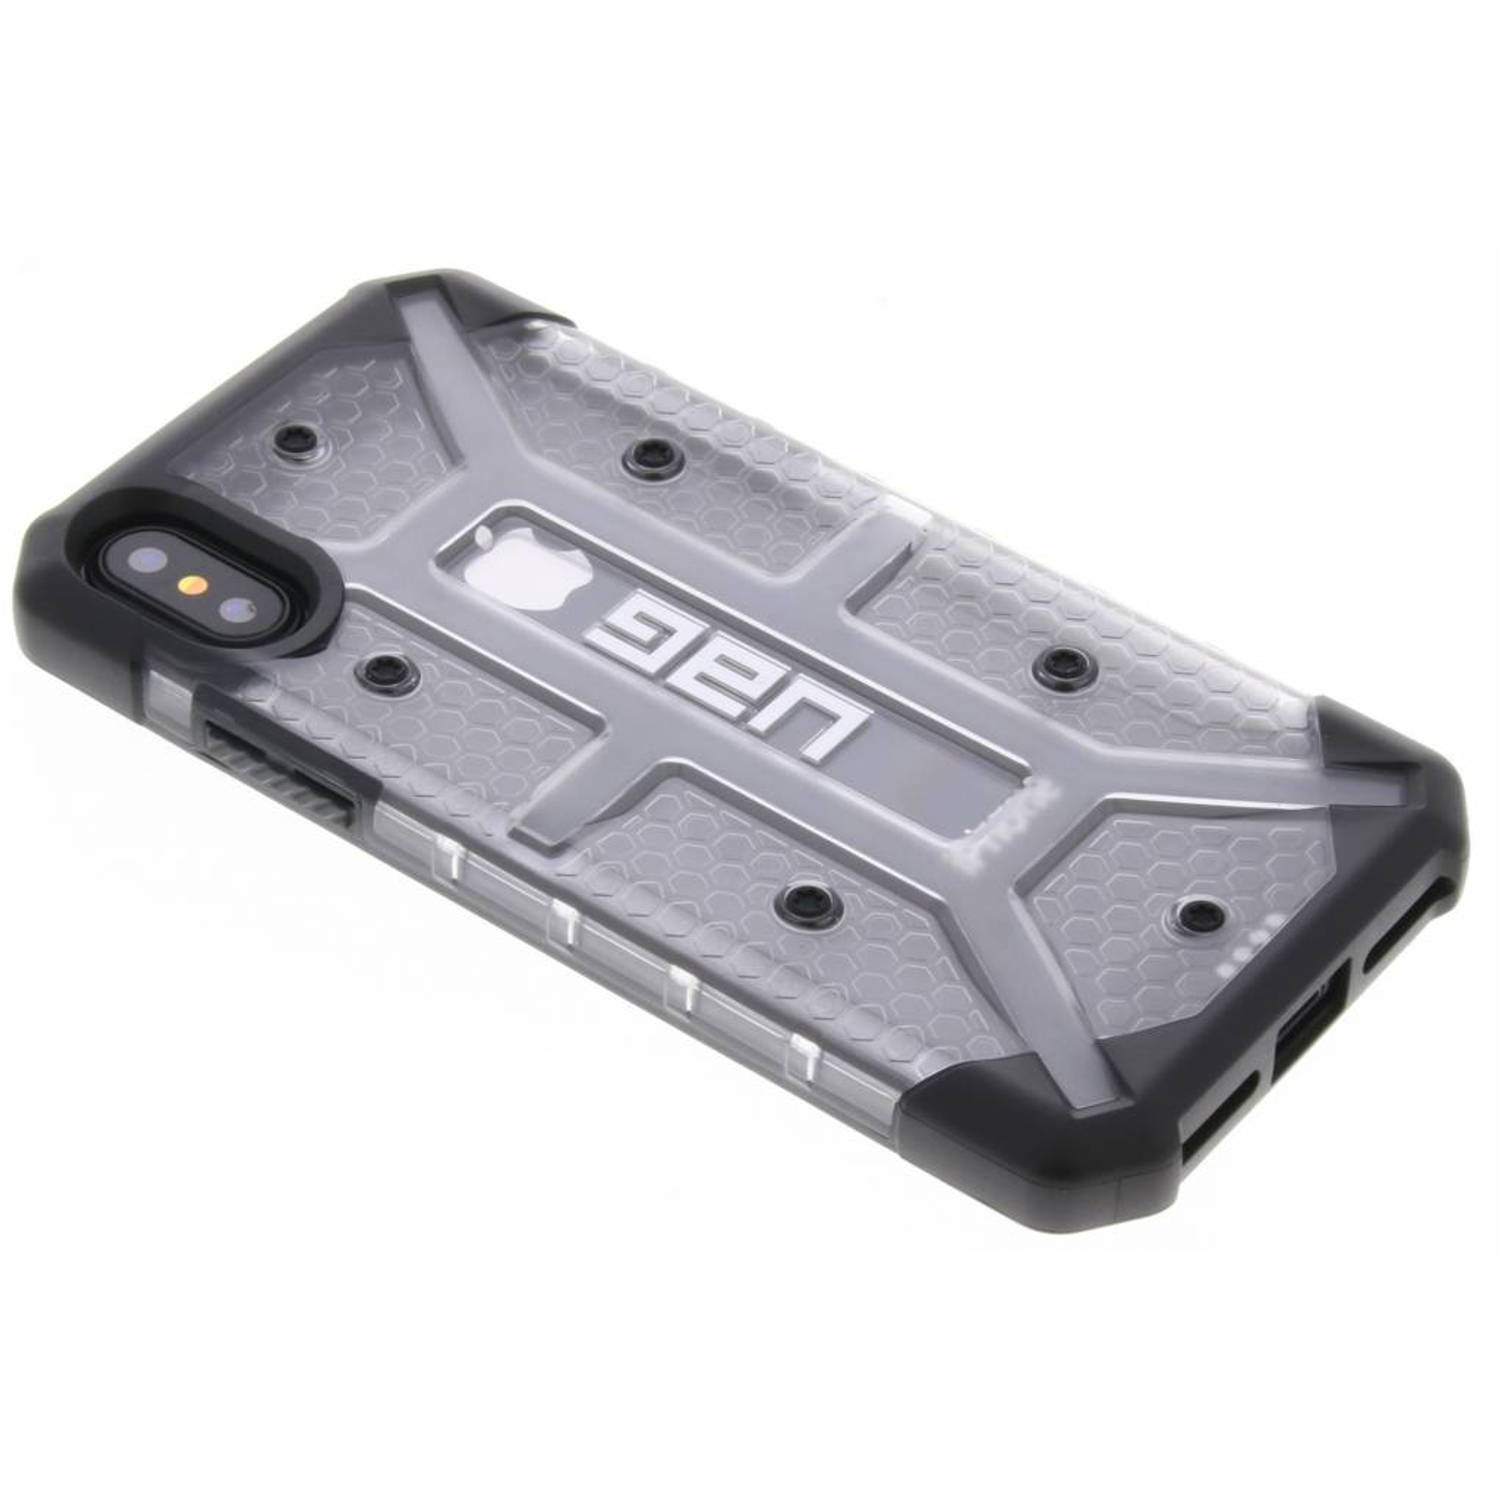 Image of Transparante Plasma Case voor de iPhone X